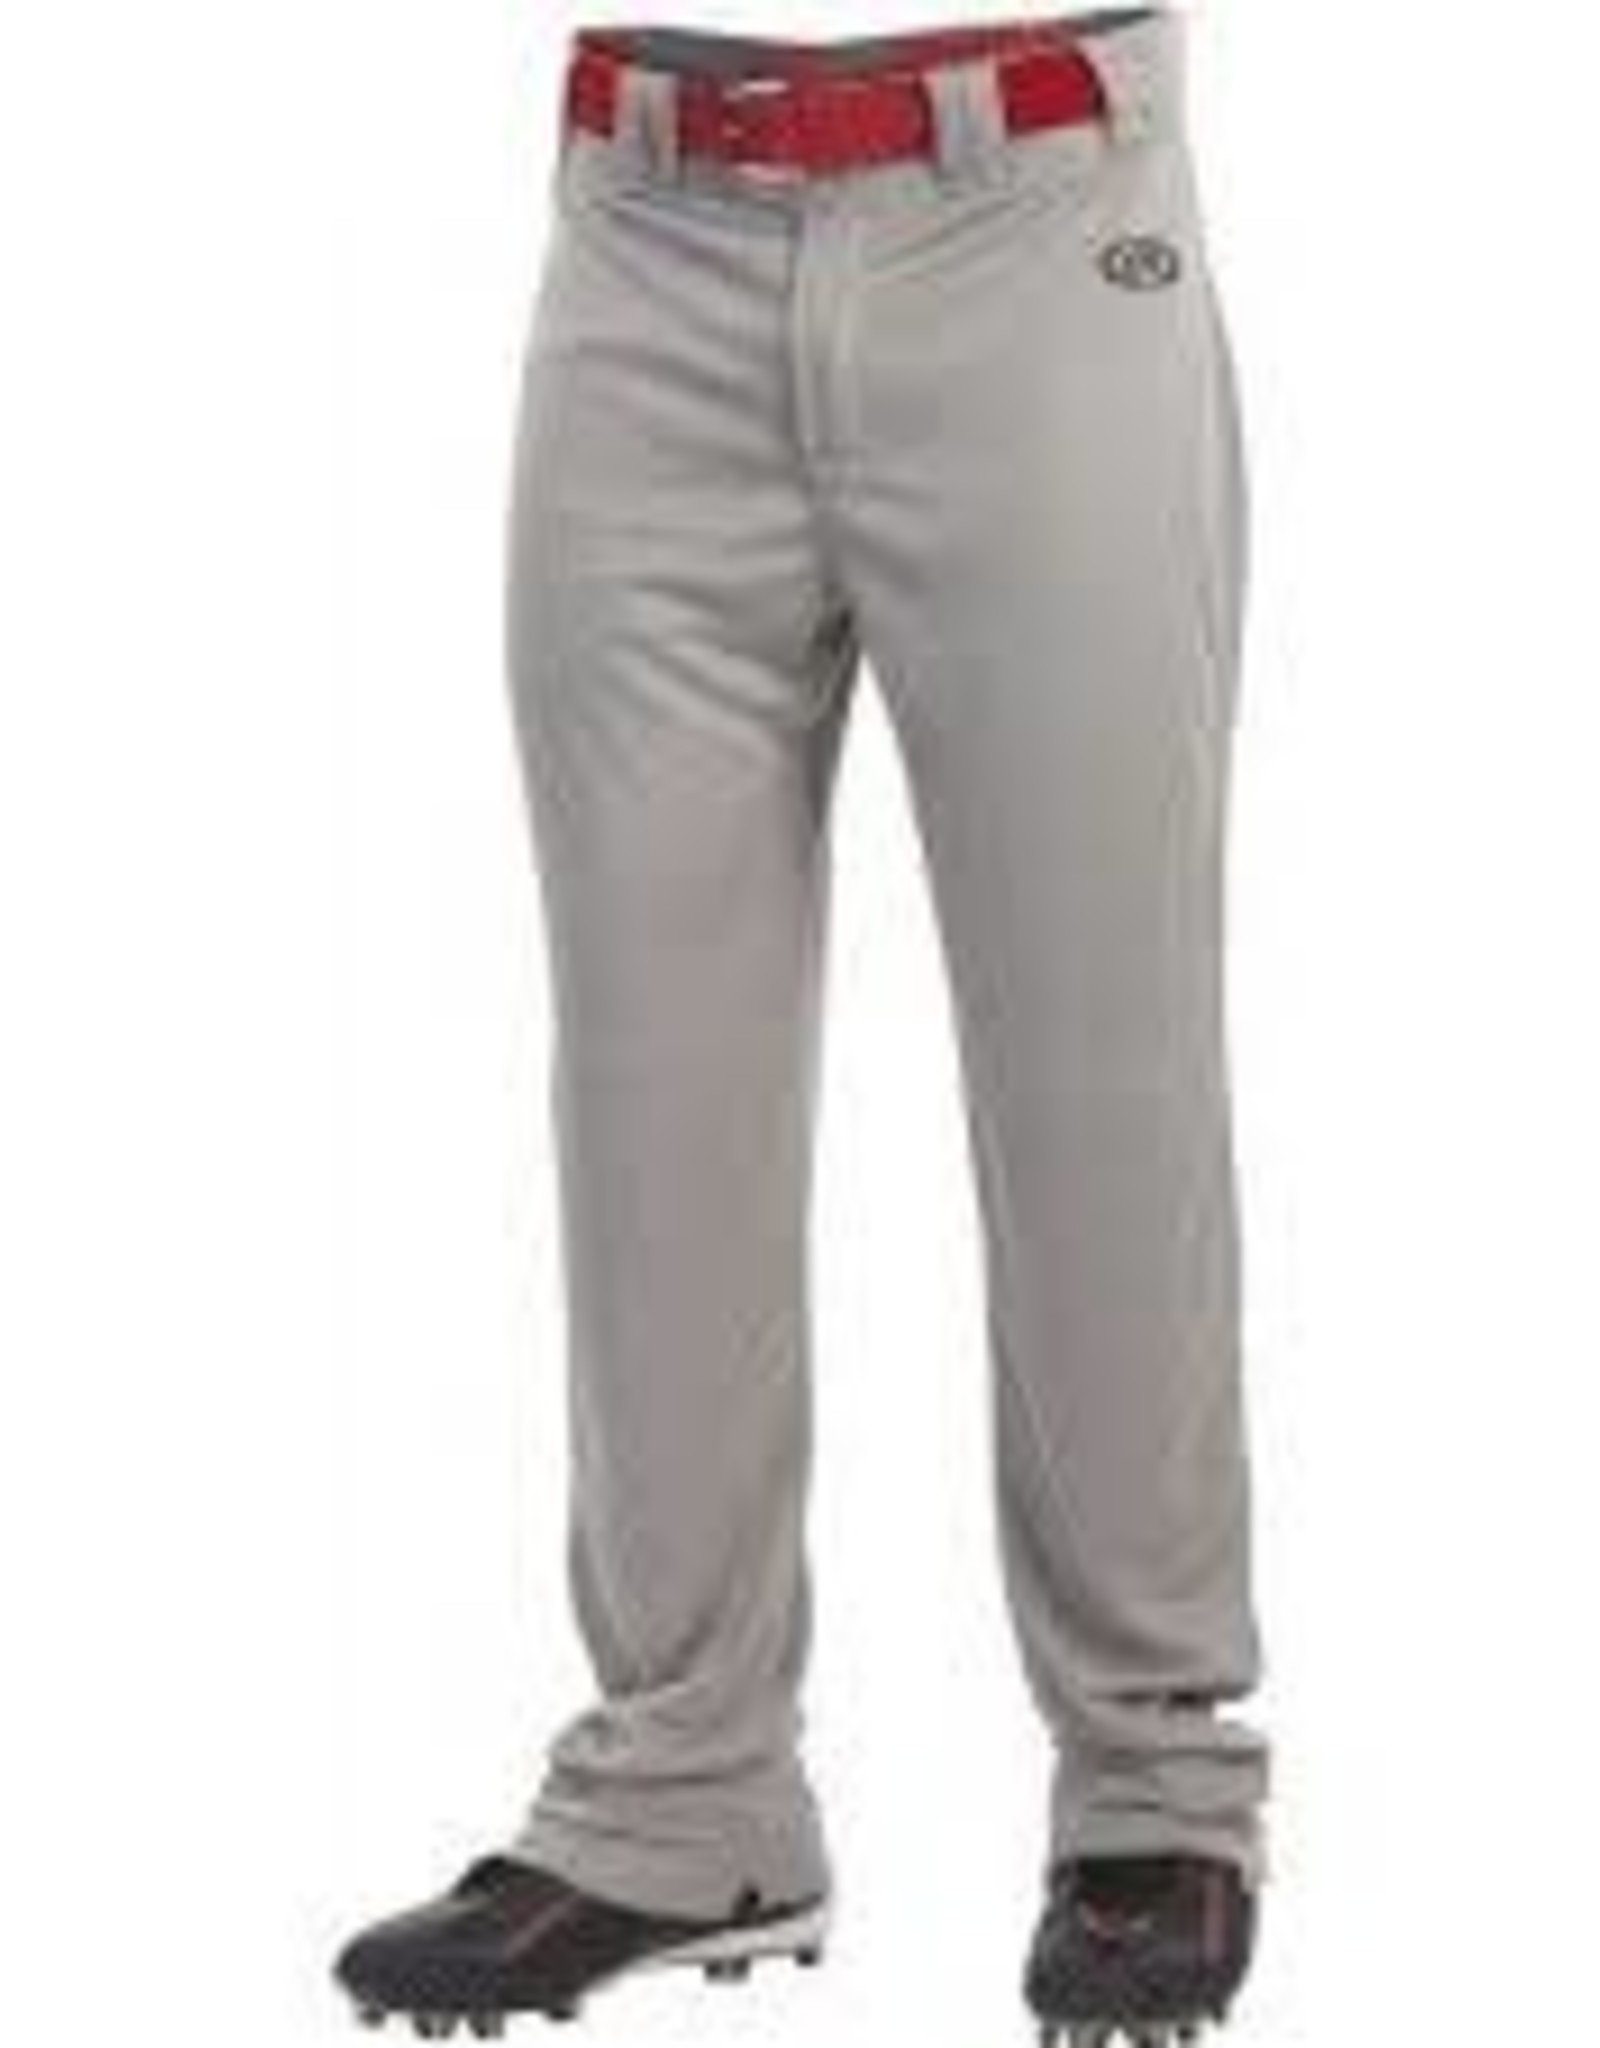 Rawlings Adult Launch Solid Pant Bluegrey 2XL